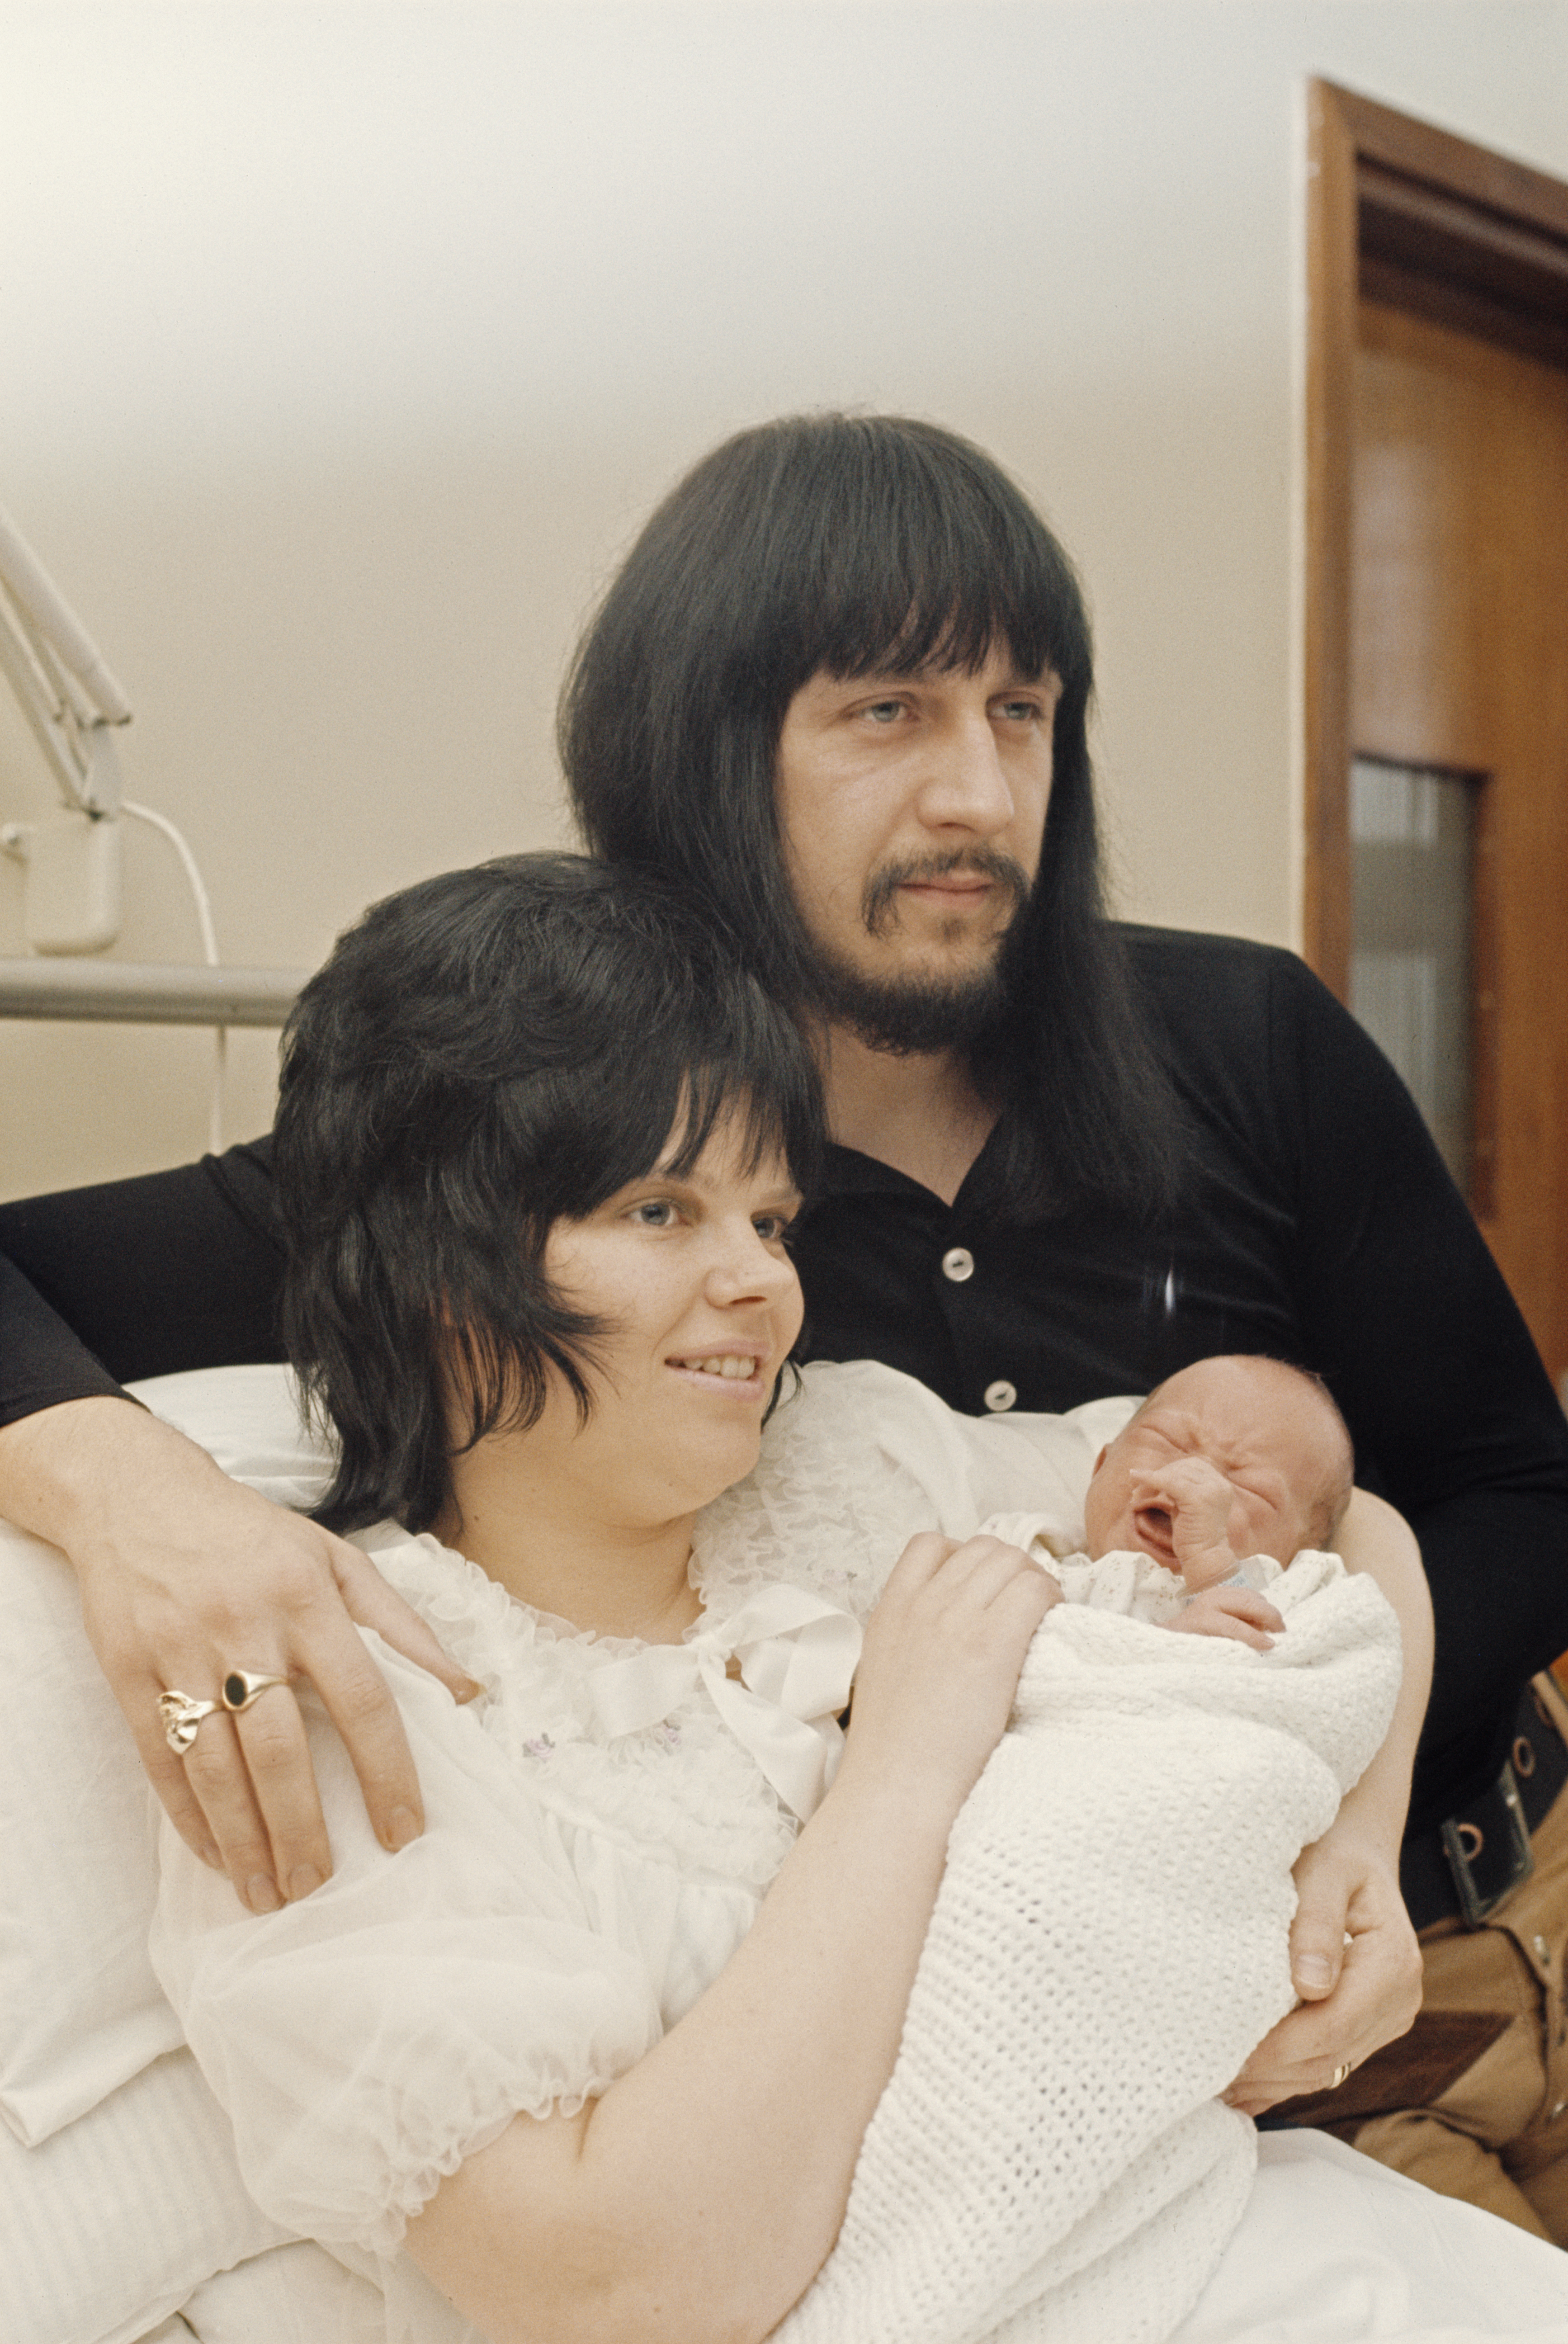 English musician John Entwistle (1944 - 2002), bass guitarist of rock band The Who, with his wife Alison and baby son Christopher at Queen Charlotte's Hospital in London, 1972. (Photo by Keystone/Hulton Archive/Getty Images)